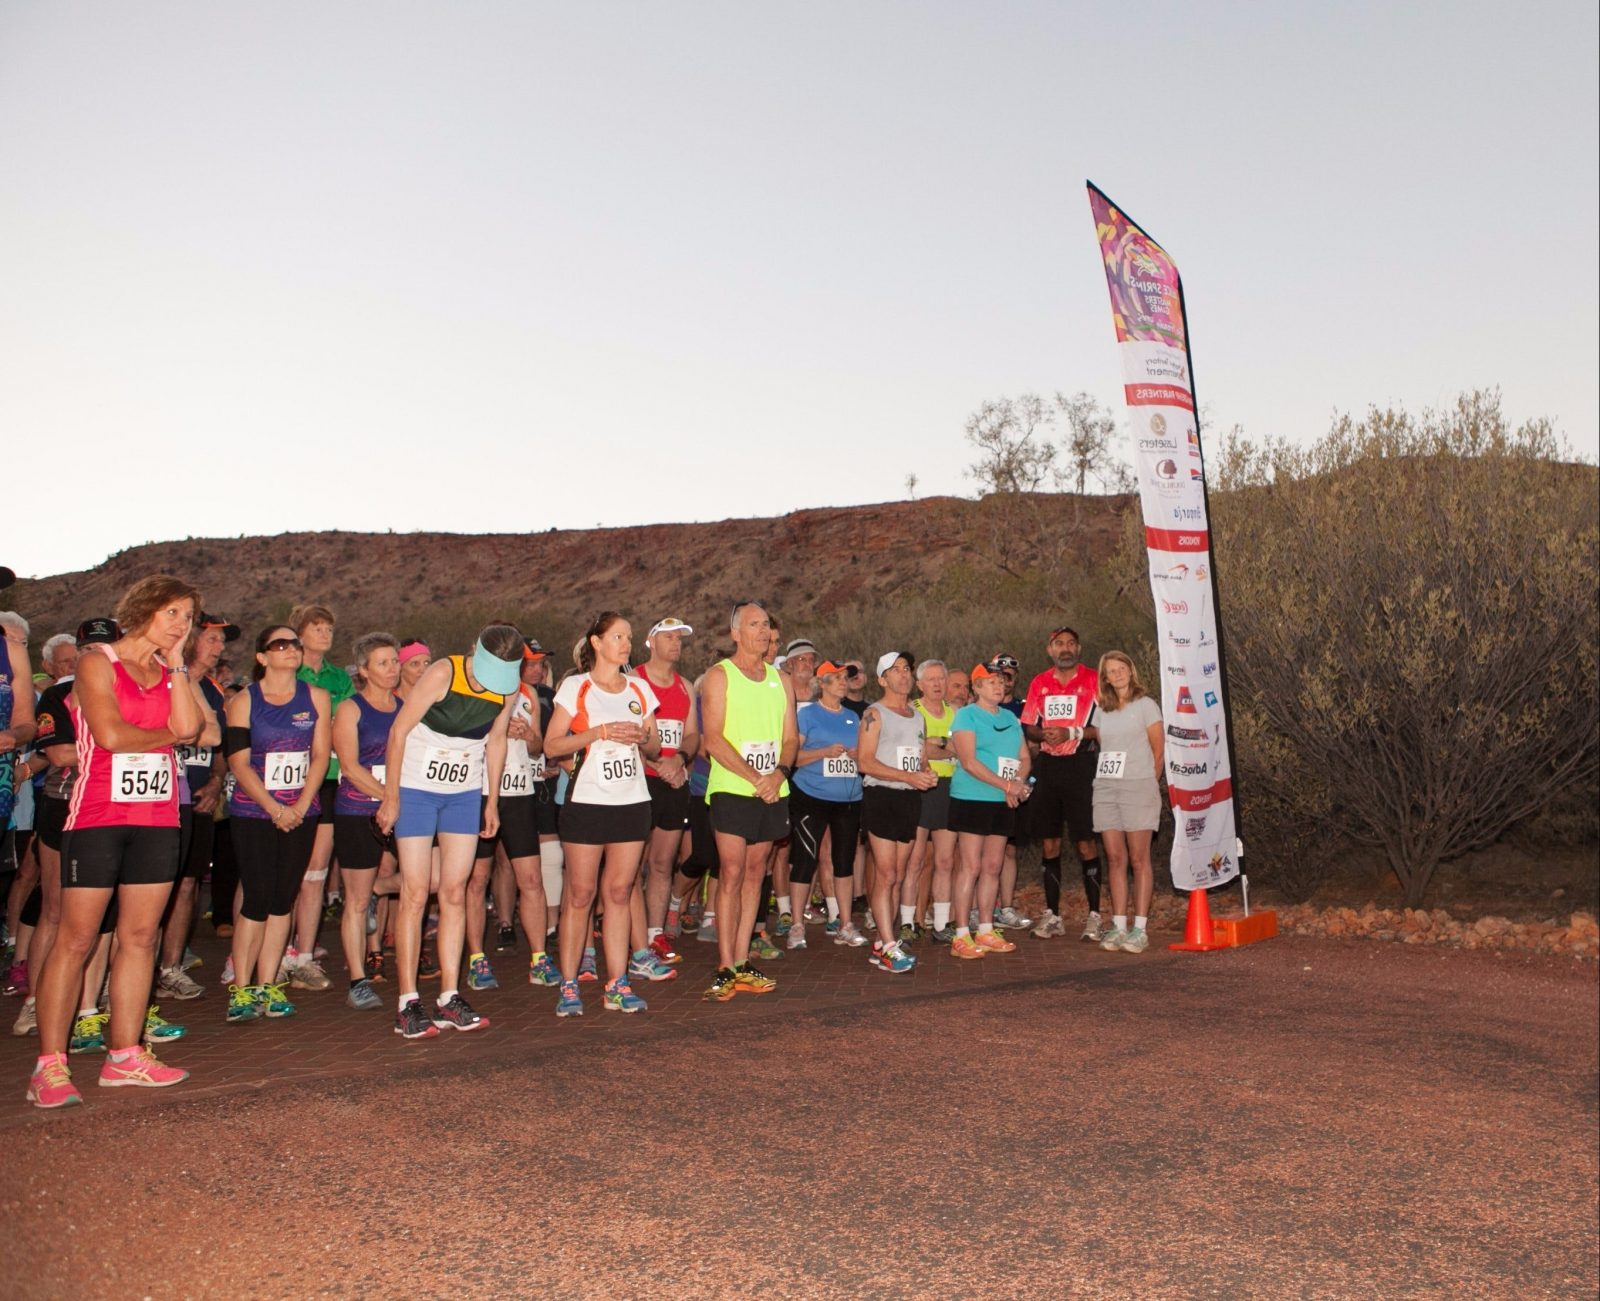 Runners at 2014 ASMG event